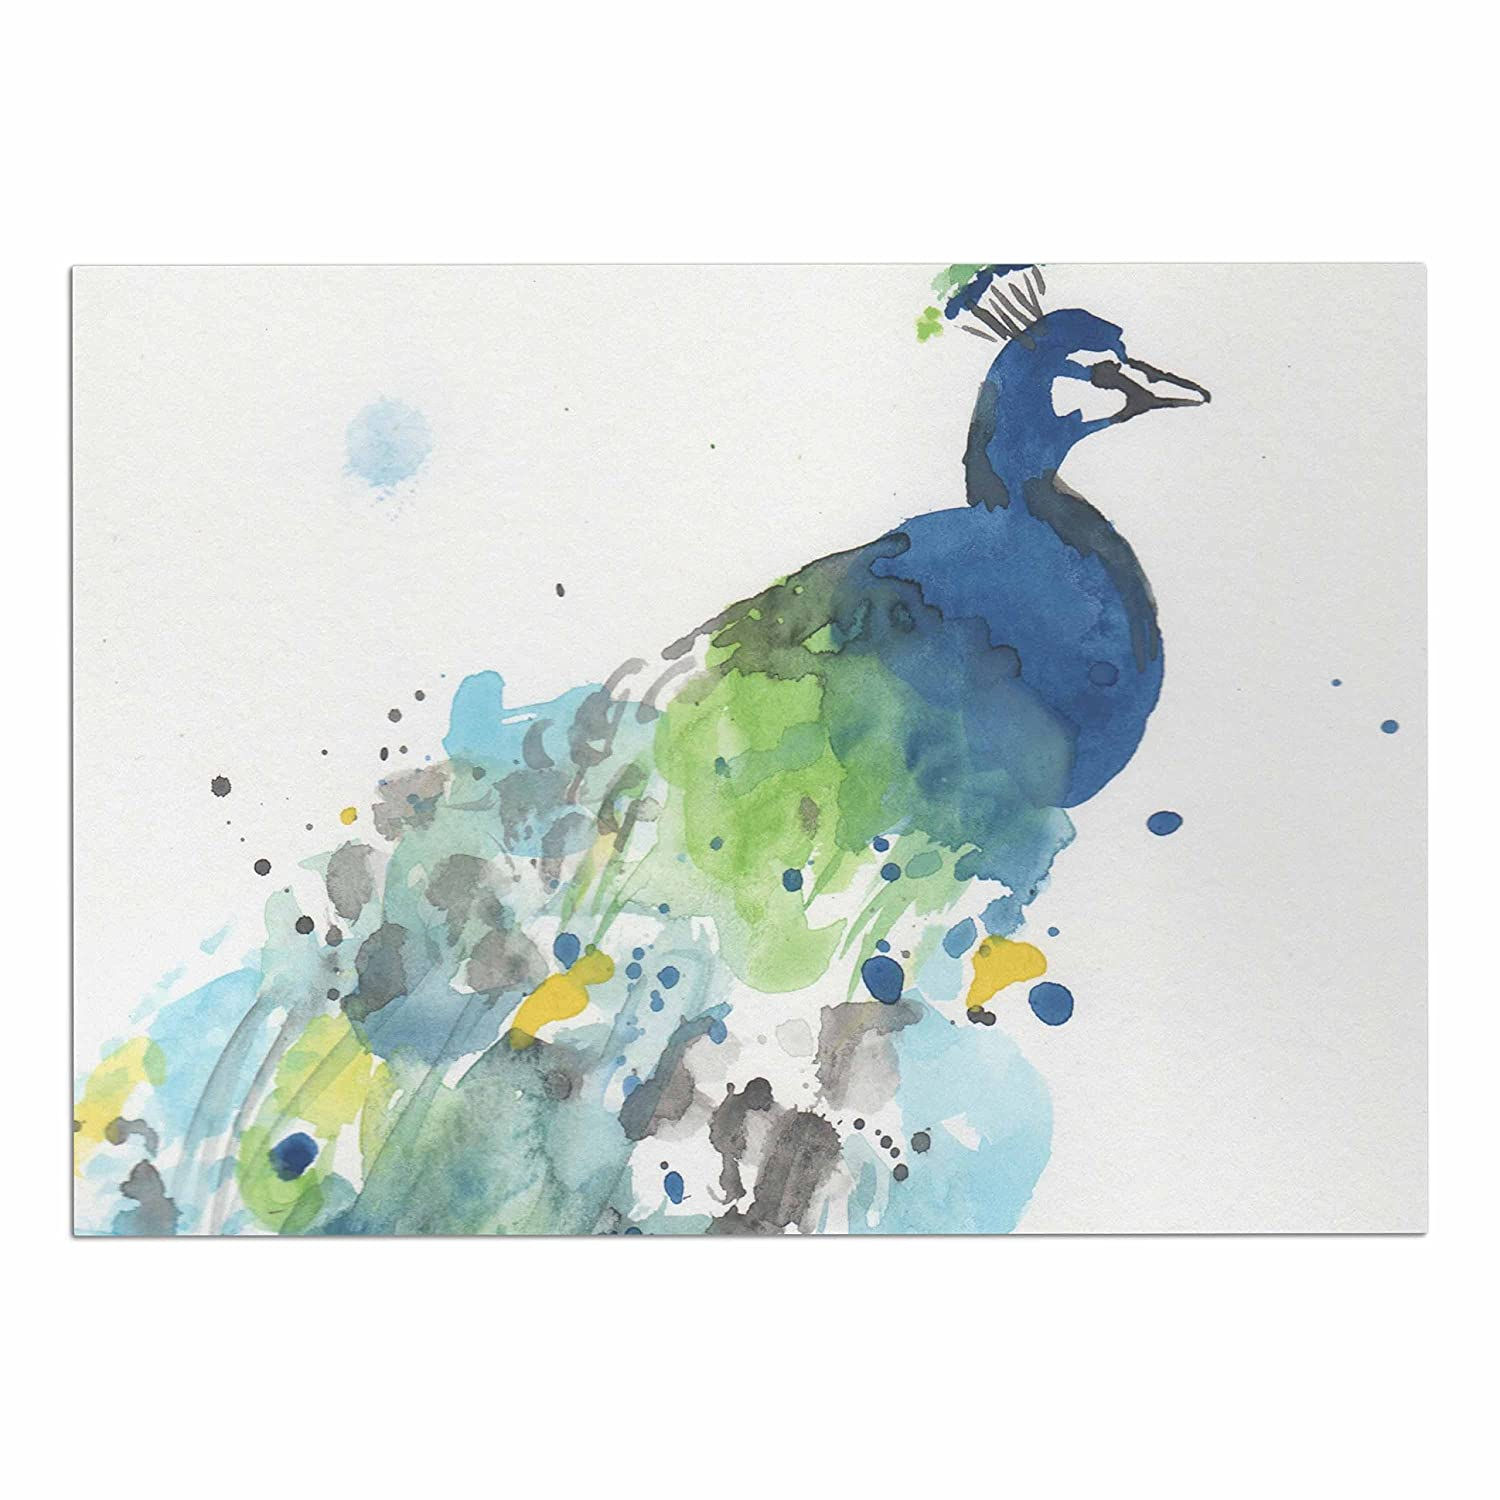 KESS InHouse RB3003ADM02 Rebecca Bender Abstract Watercolor Peacock bluee Teal Dog Place Mat, 24  x 15